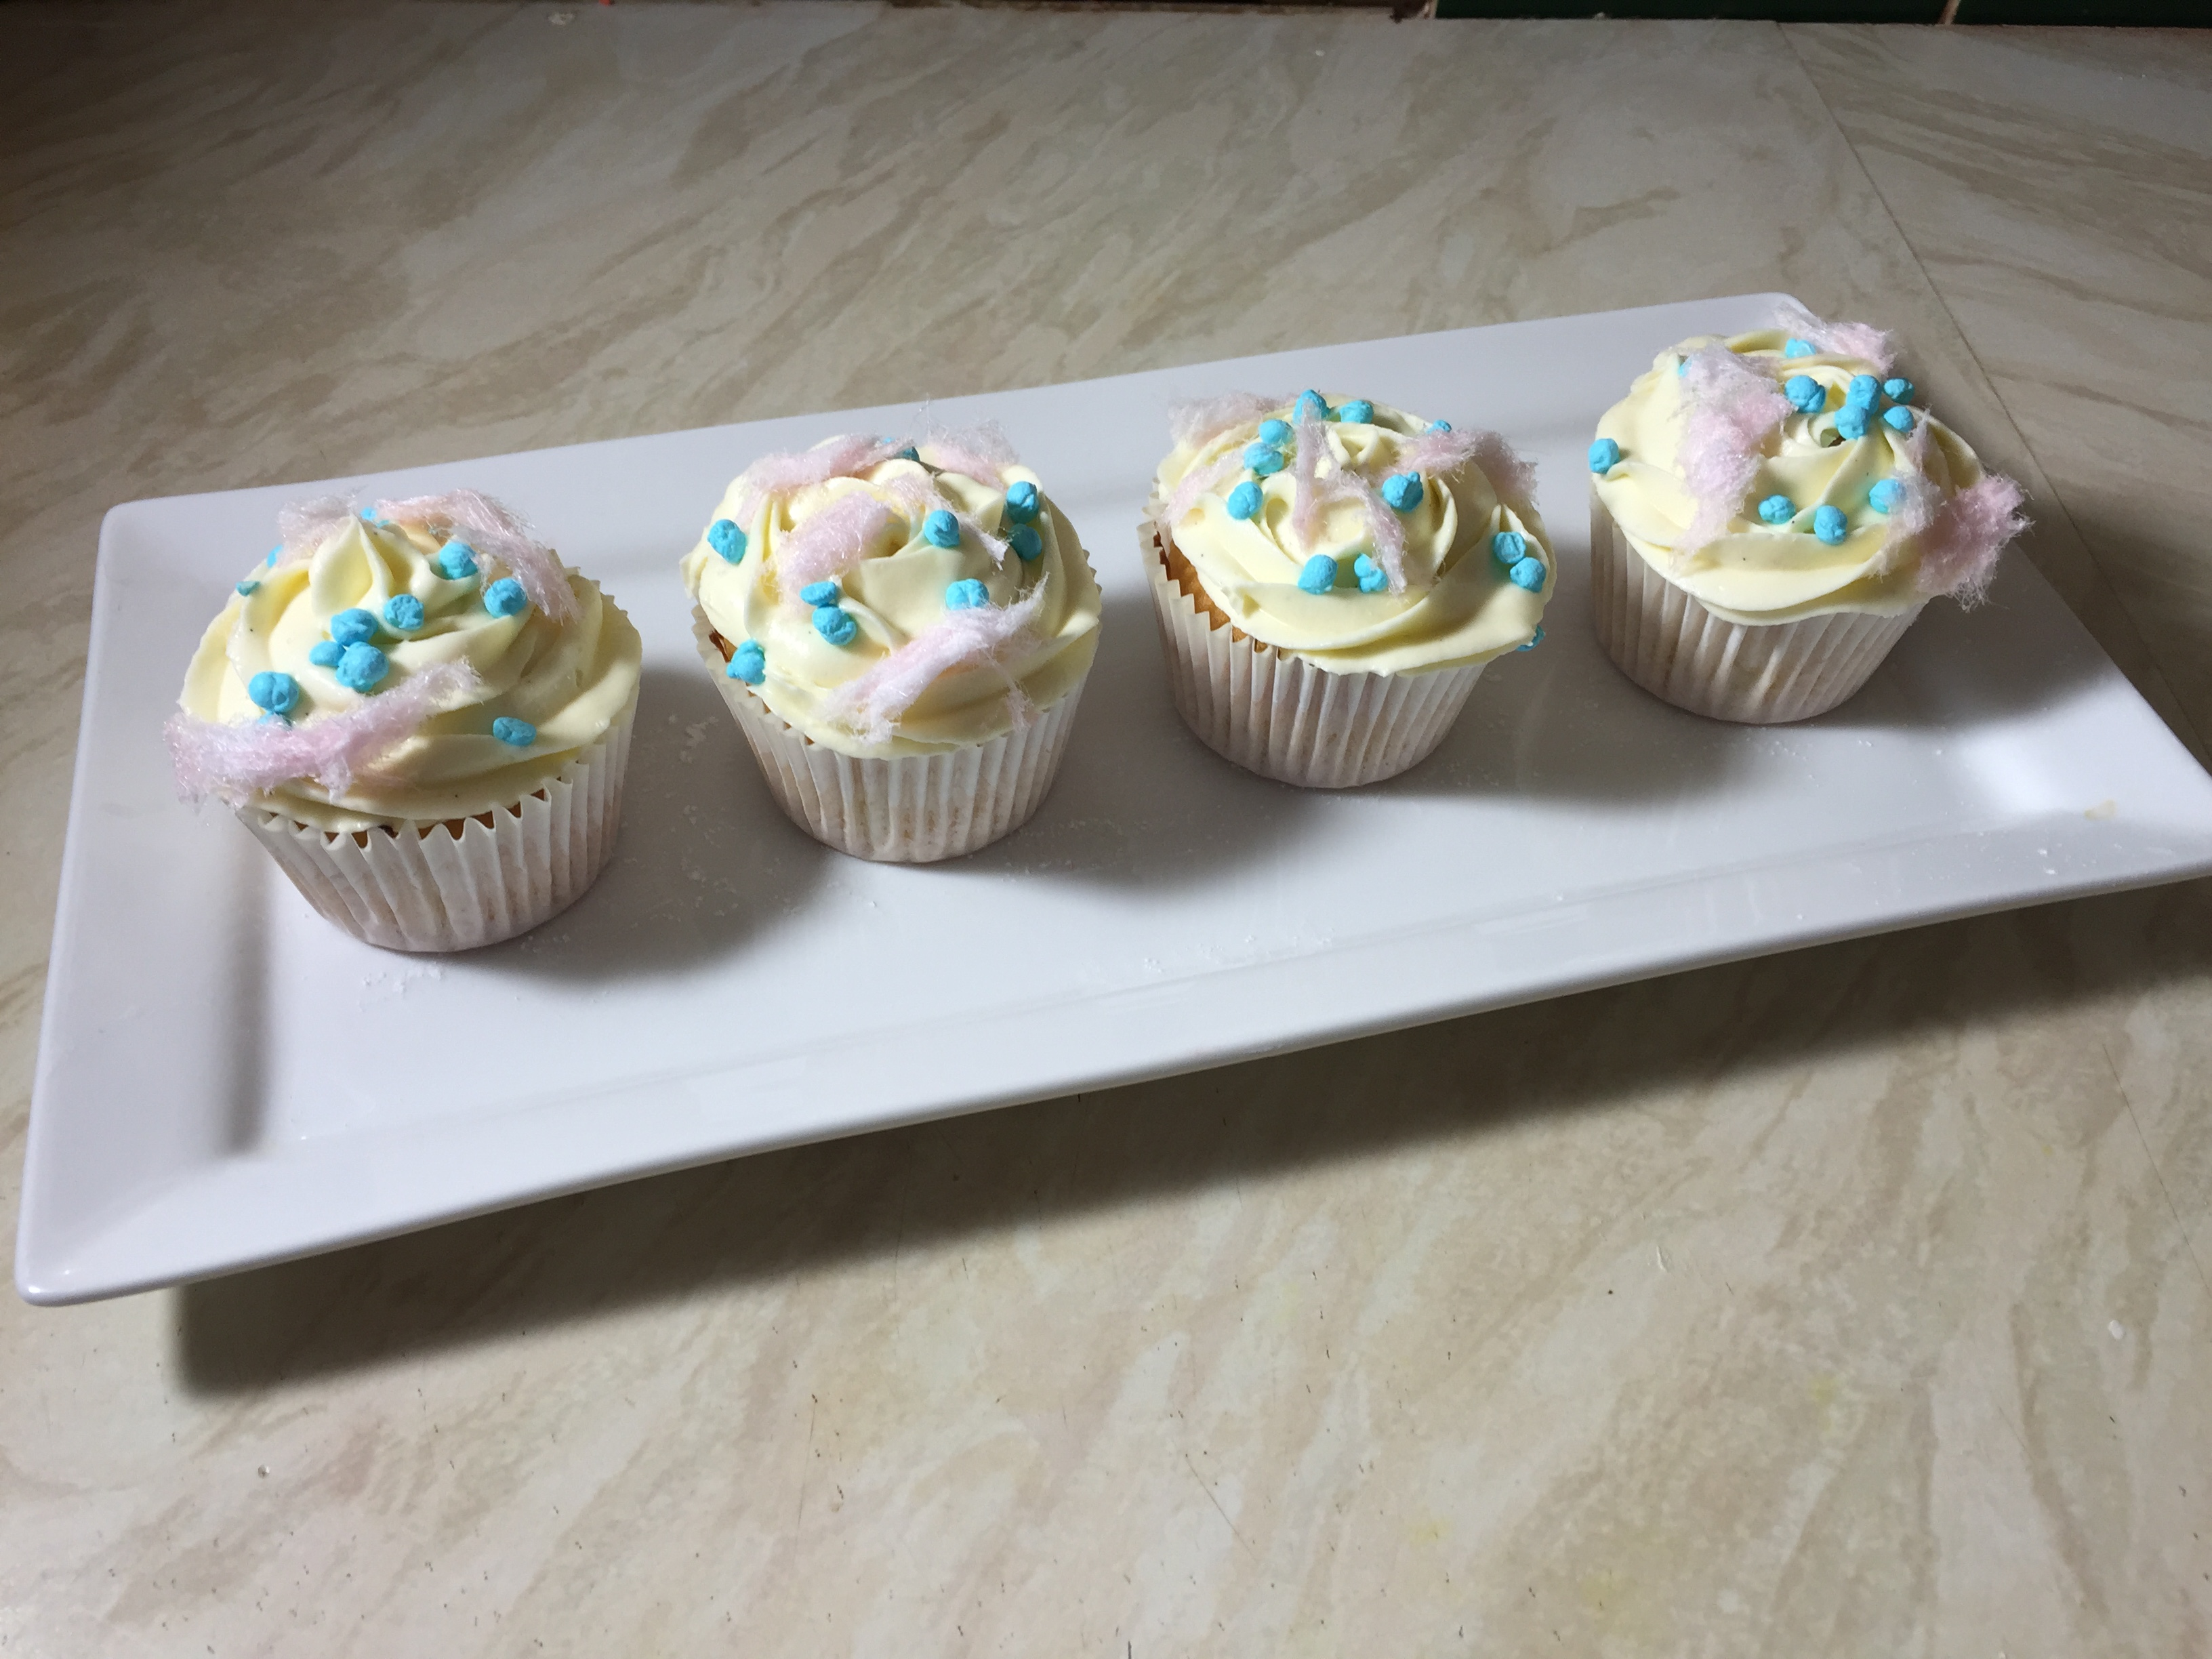 Bubblegum natural foodie flavour cupcakes